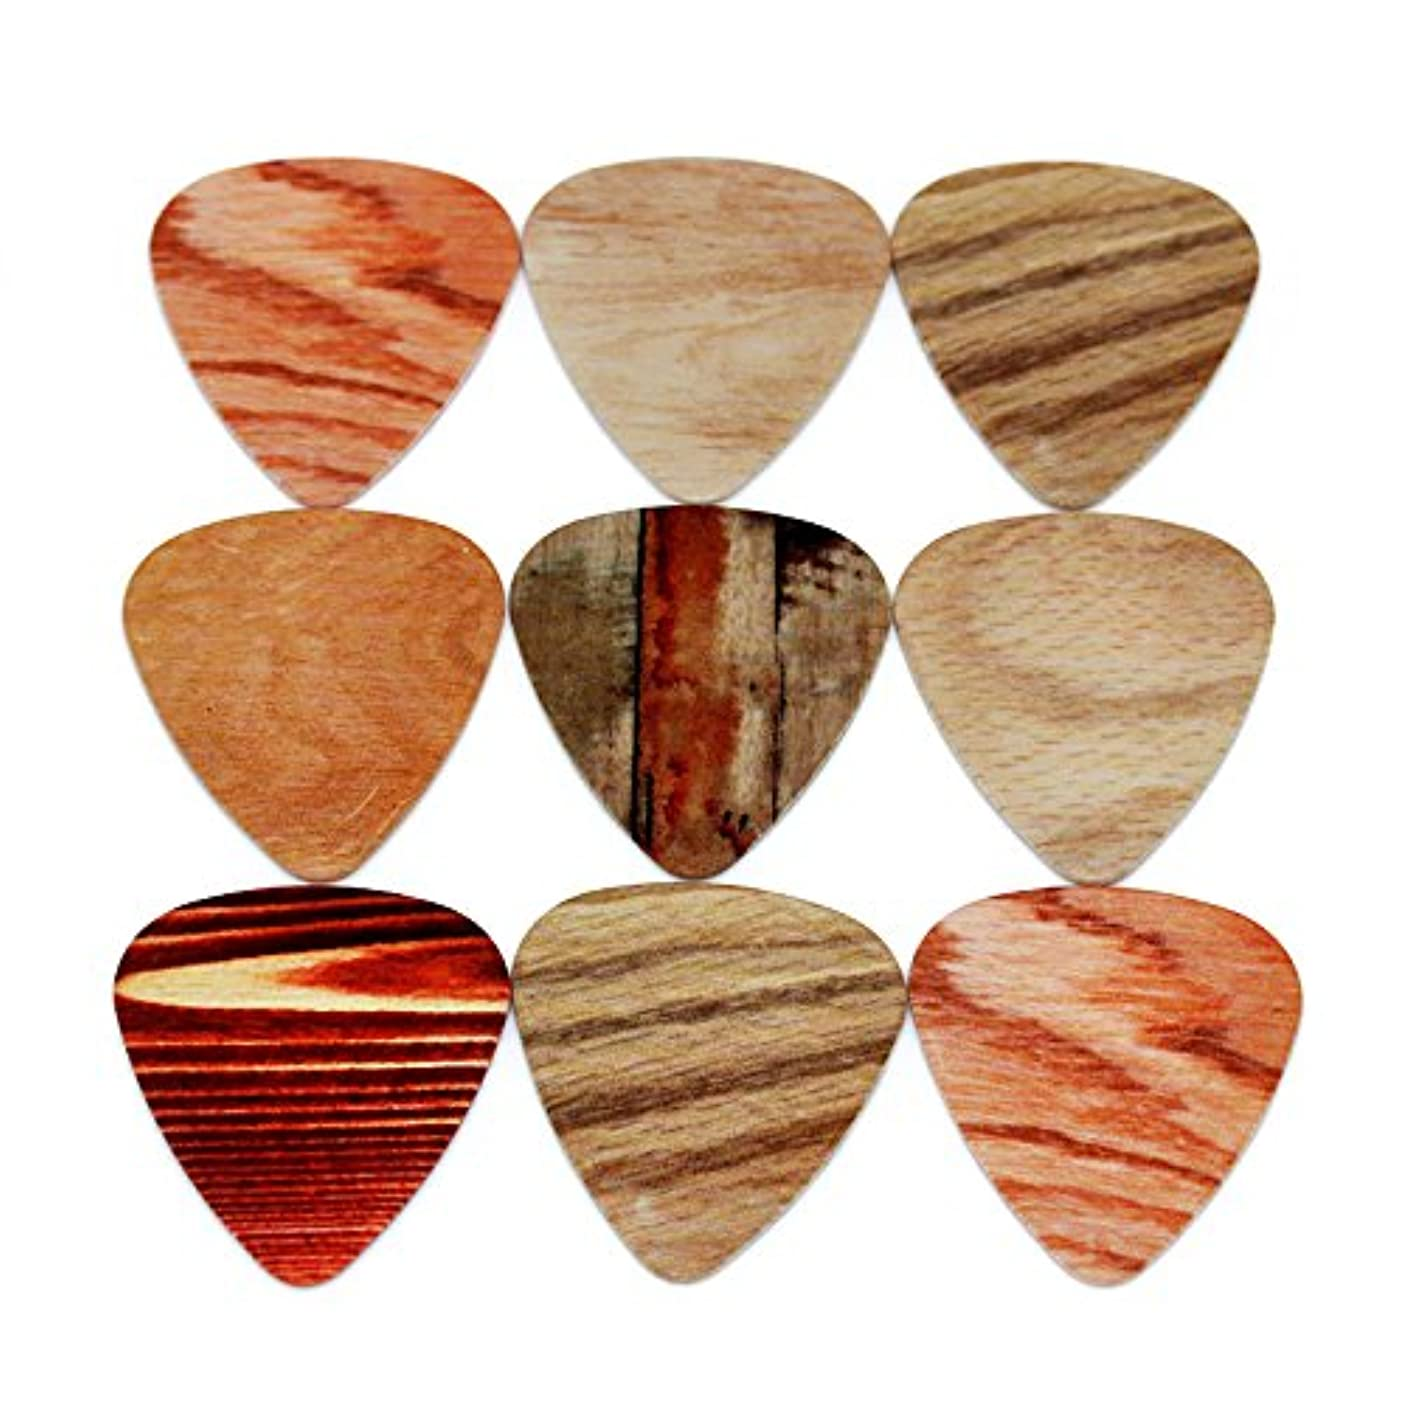 噂灌漑さようならSOACH 10pcs Newest Wood grain Guitar Picks Thickness 0.71mm guitar strap guitar stringsThickness 0.46mm Thickness 1.00mm